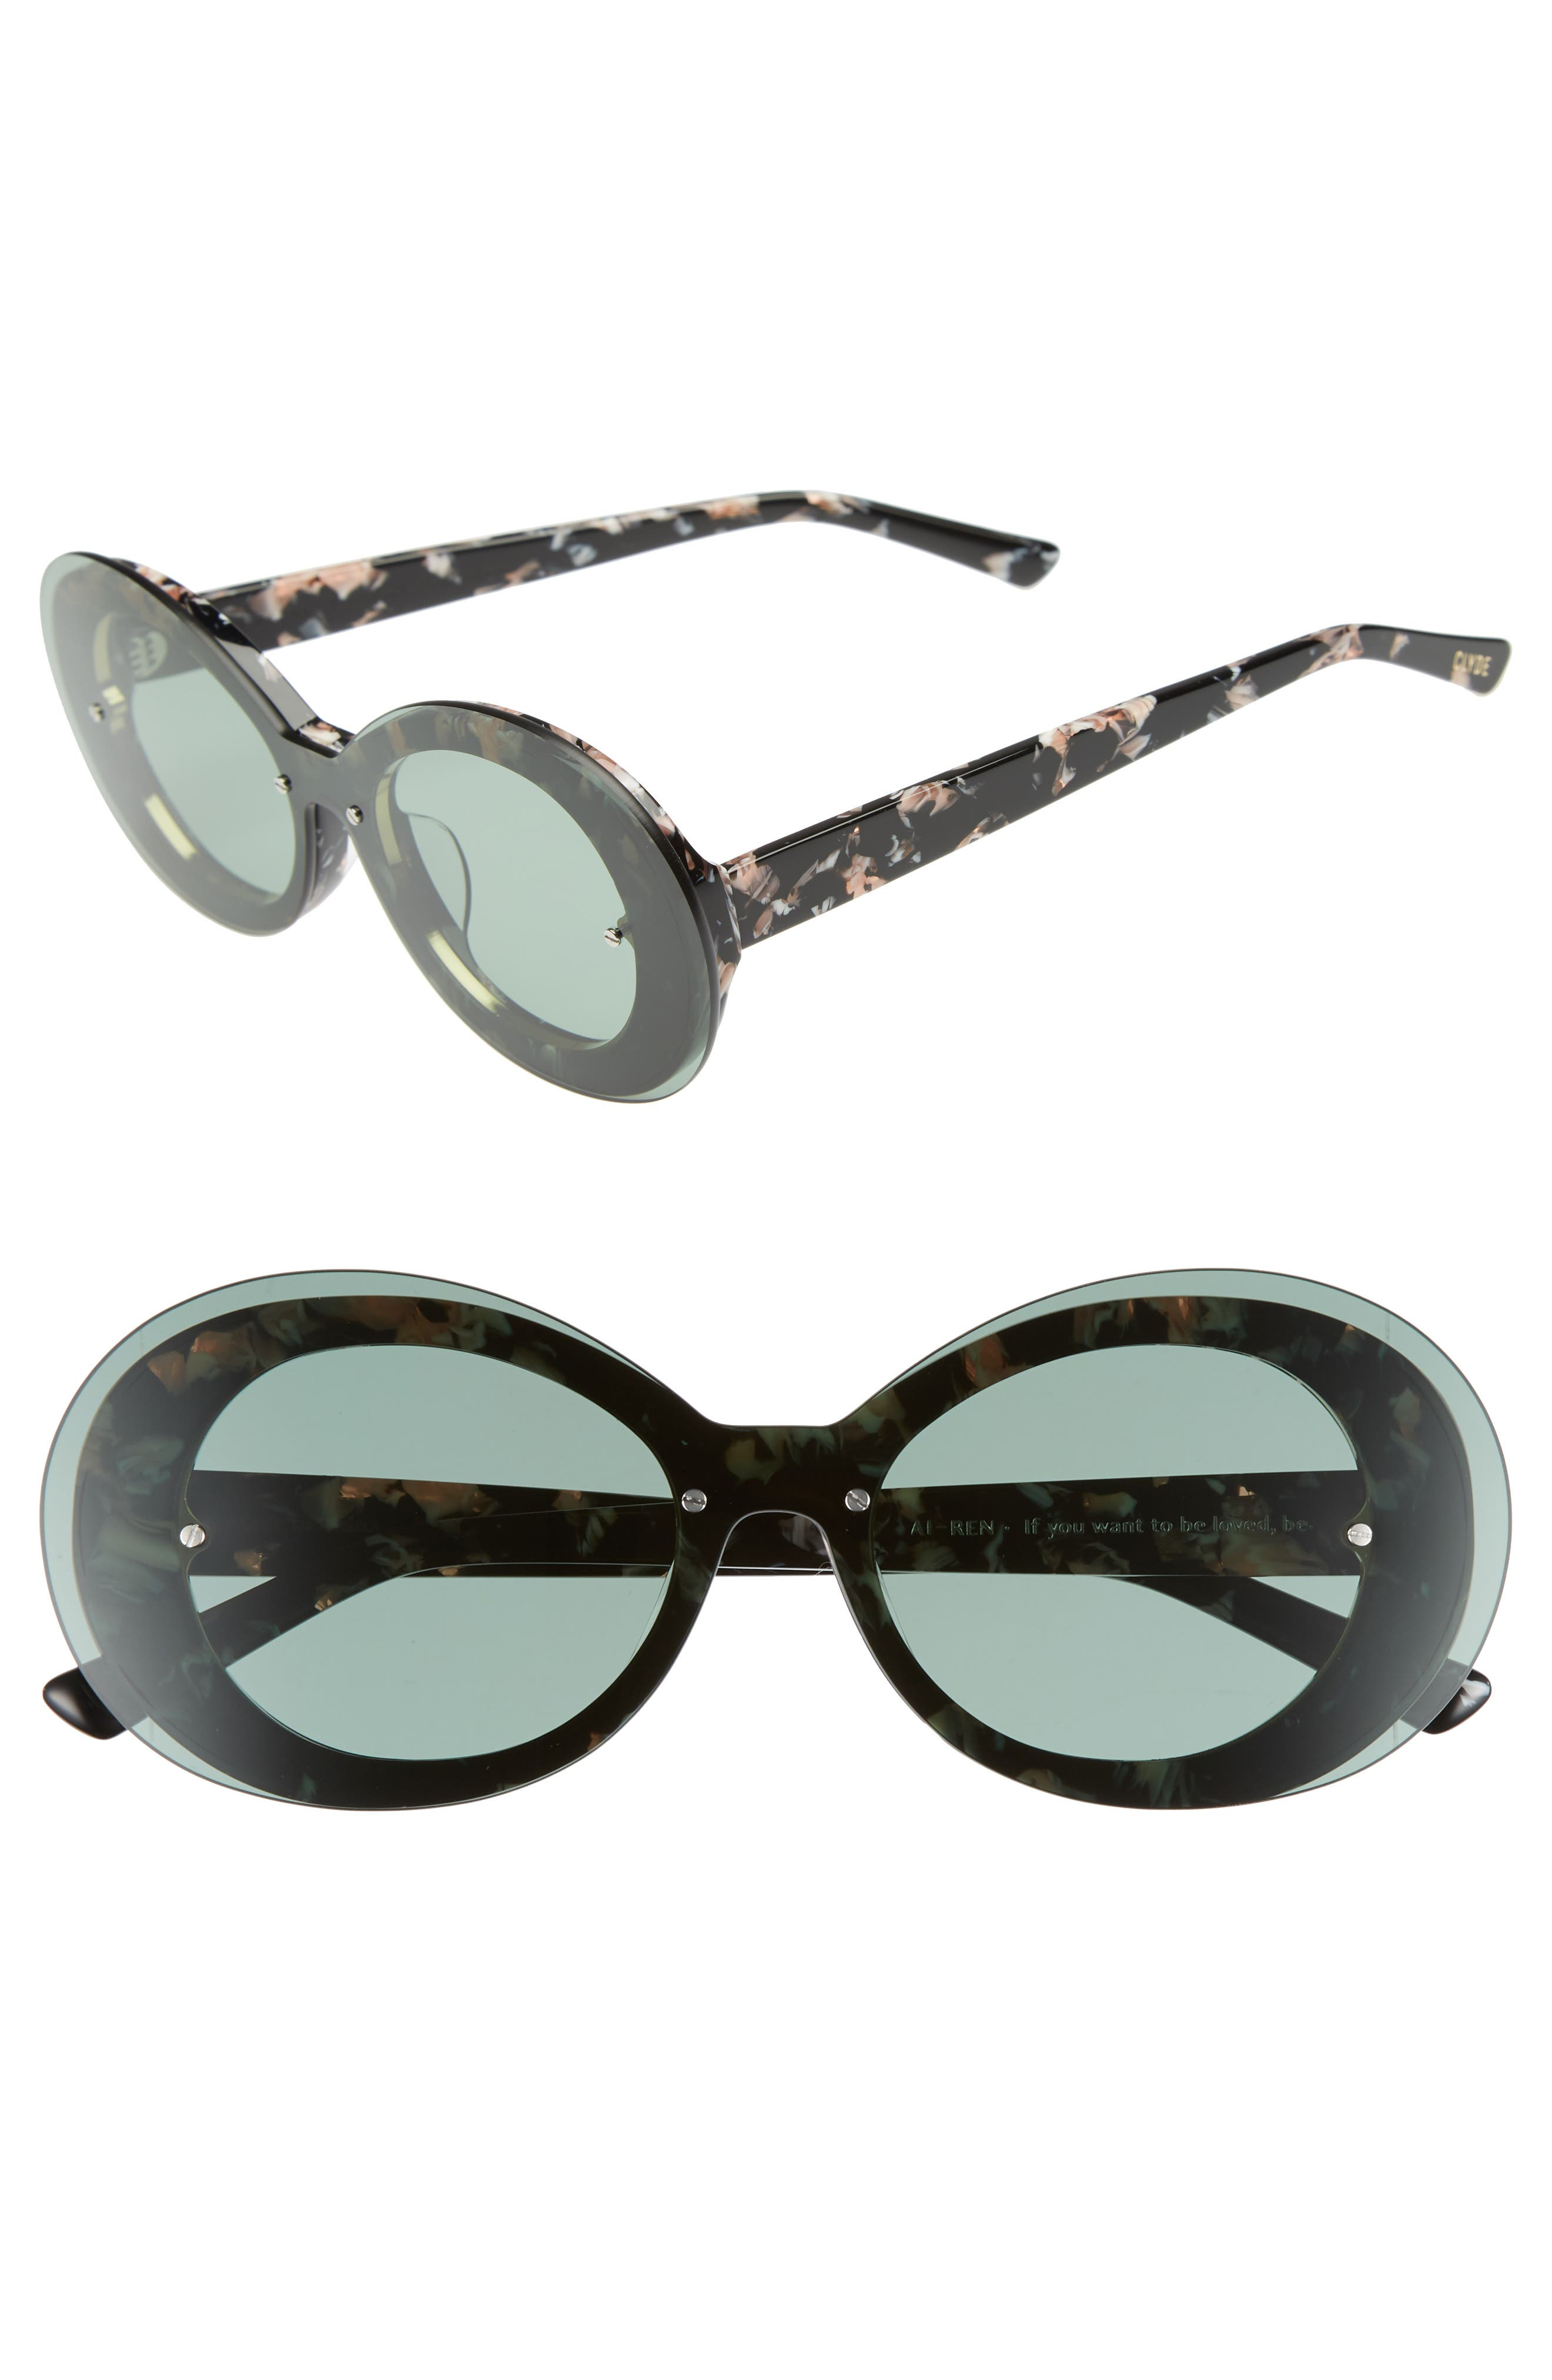 Ai-Ren 51mm Round Sunglasses,                             Main thumbnail 1, color,                             Marbled Olive